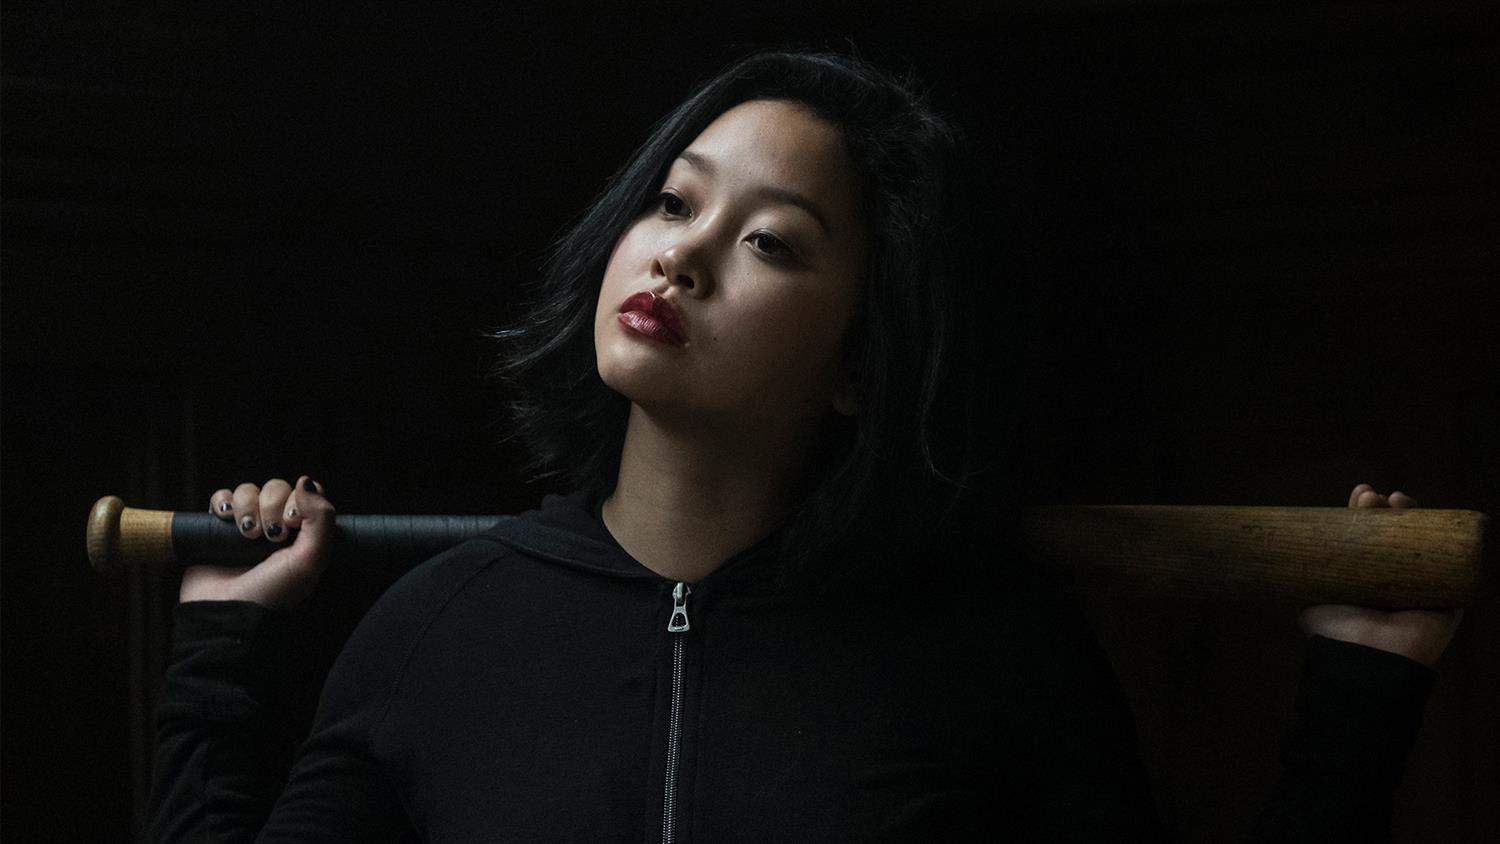 Deadly Class - 10 Things You Don't Know About Lana Condor